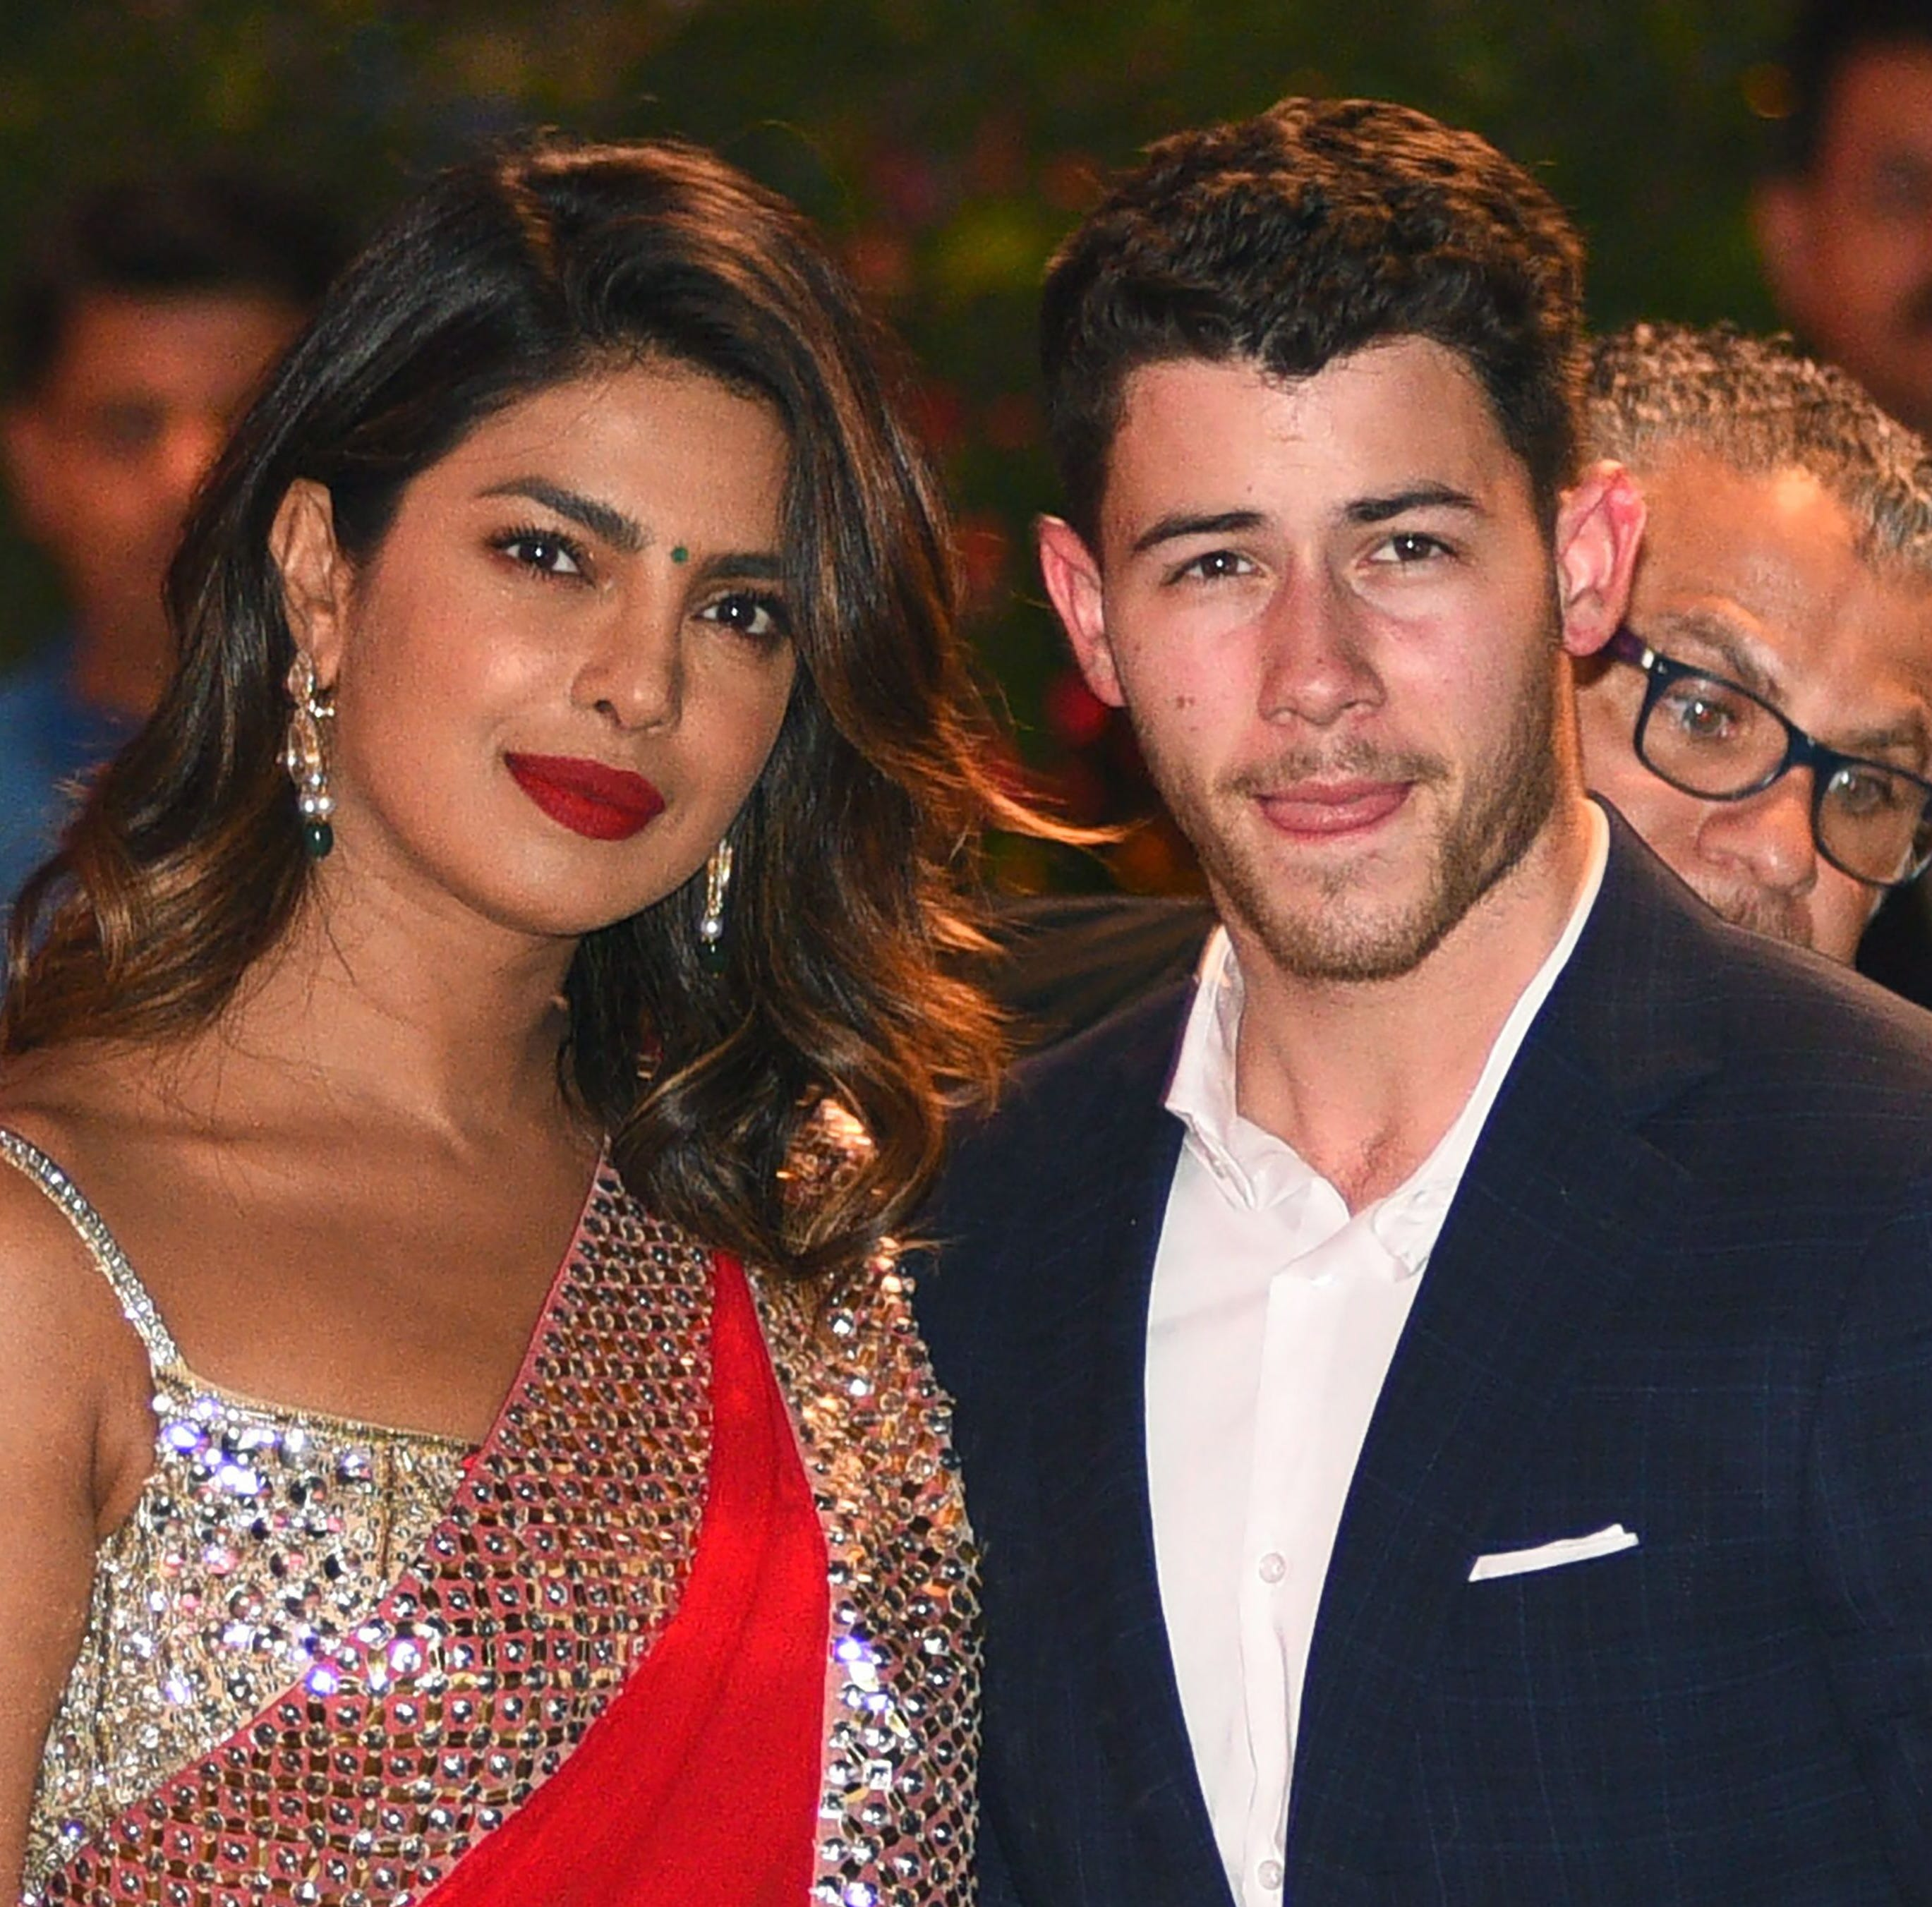 "(FILES) In this file photo taken on June 28, 2018, Indian Bollywood actress Priyanka Chopra (L) accompanied by Nick Jonas arrive for the pre-engagement party of India's richest man and Reliance Industries Limited Chairman, Mukesh Ambanis eldest son Akash Ambani and fiancee Shloka Mehta in Mumbai. - American singer Nick Jonas on August 18 announced Indian superstar Priyanka Chopra will be ""Mrs Jonas"" after the couple performed a traditional ceremony in Mumbai, the home of Bollywood cinema. (Photo by SUJIT JAISWAL / AFP)SUJIT JAISWAL/AFP/Getty Images ORIG FILE ID: AFP_18G0BC"